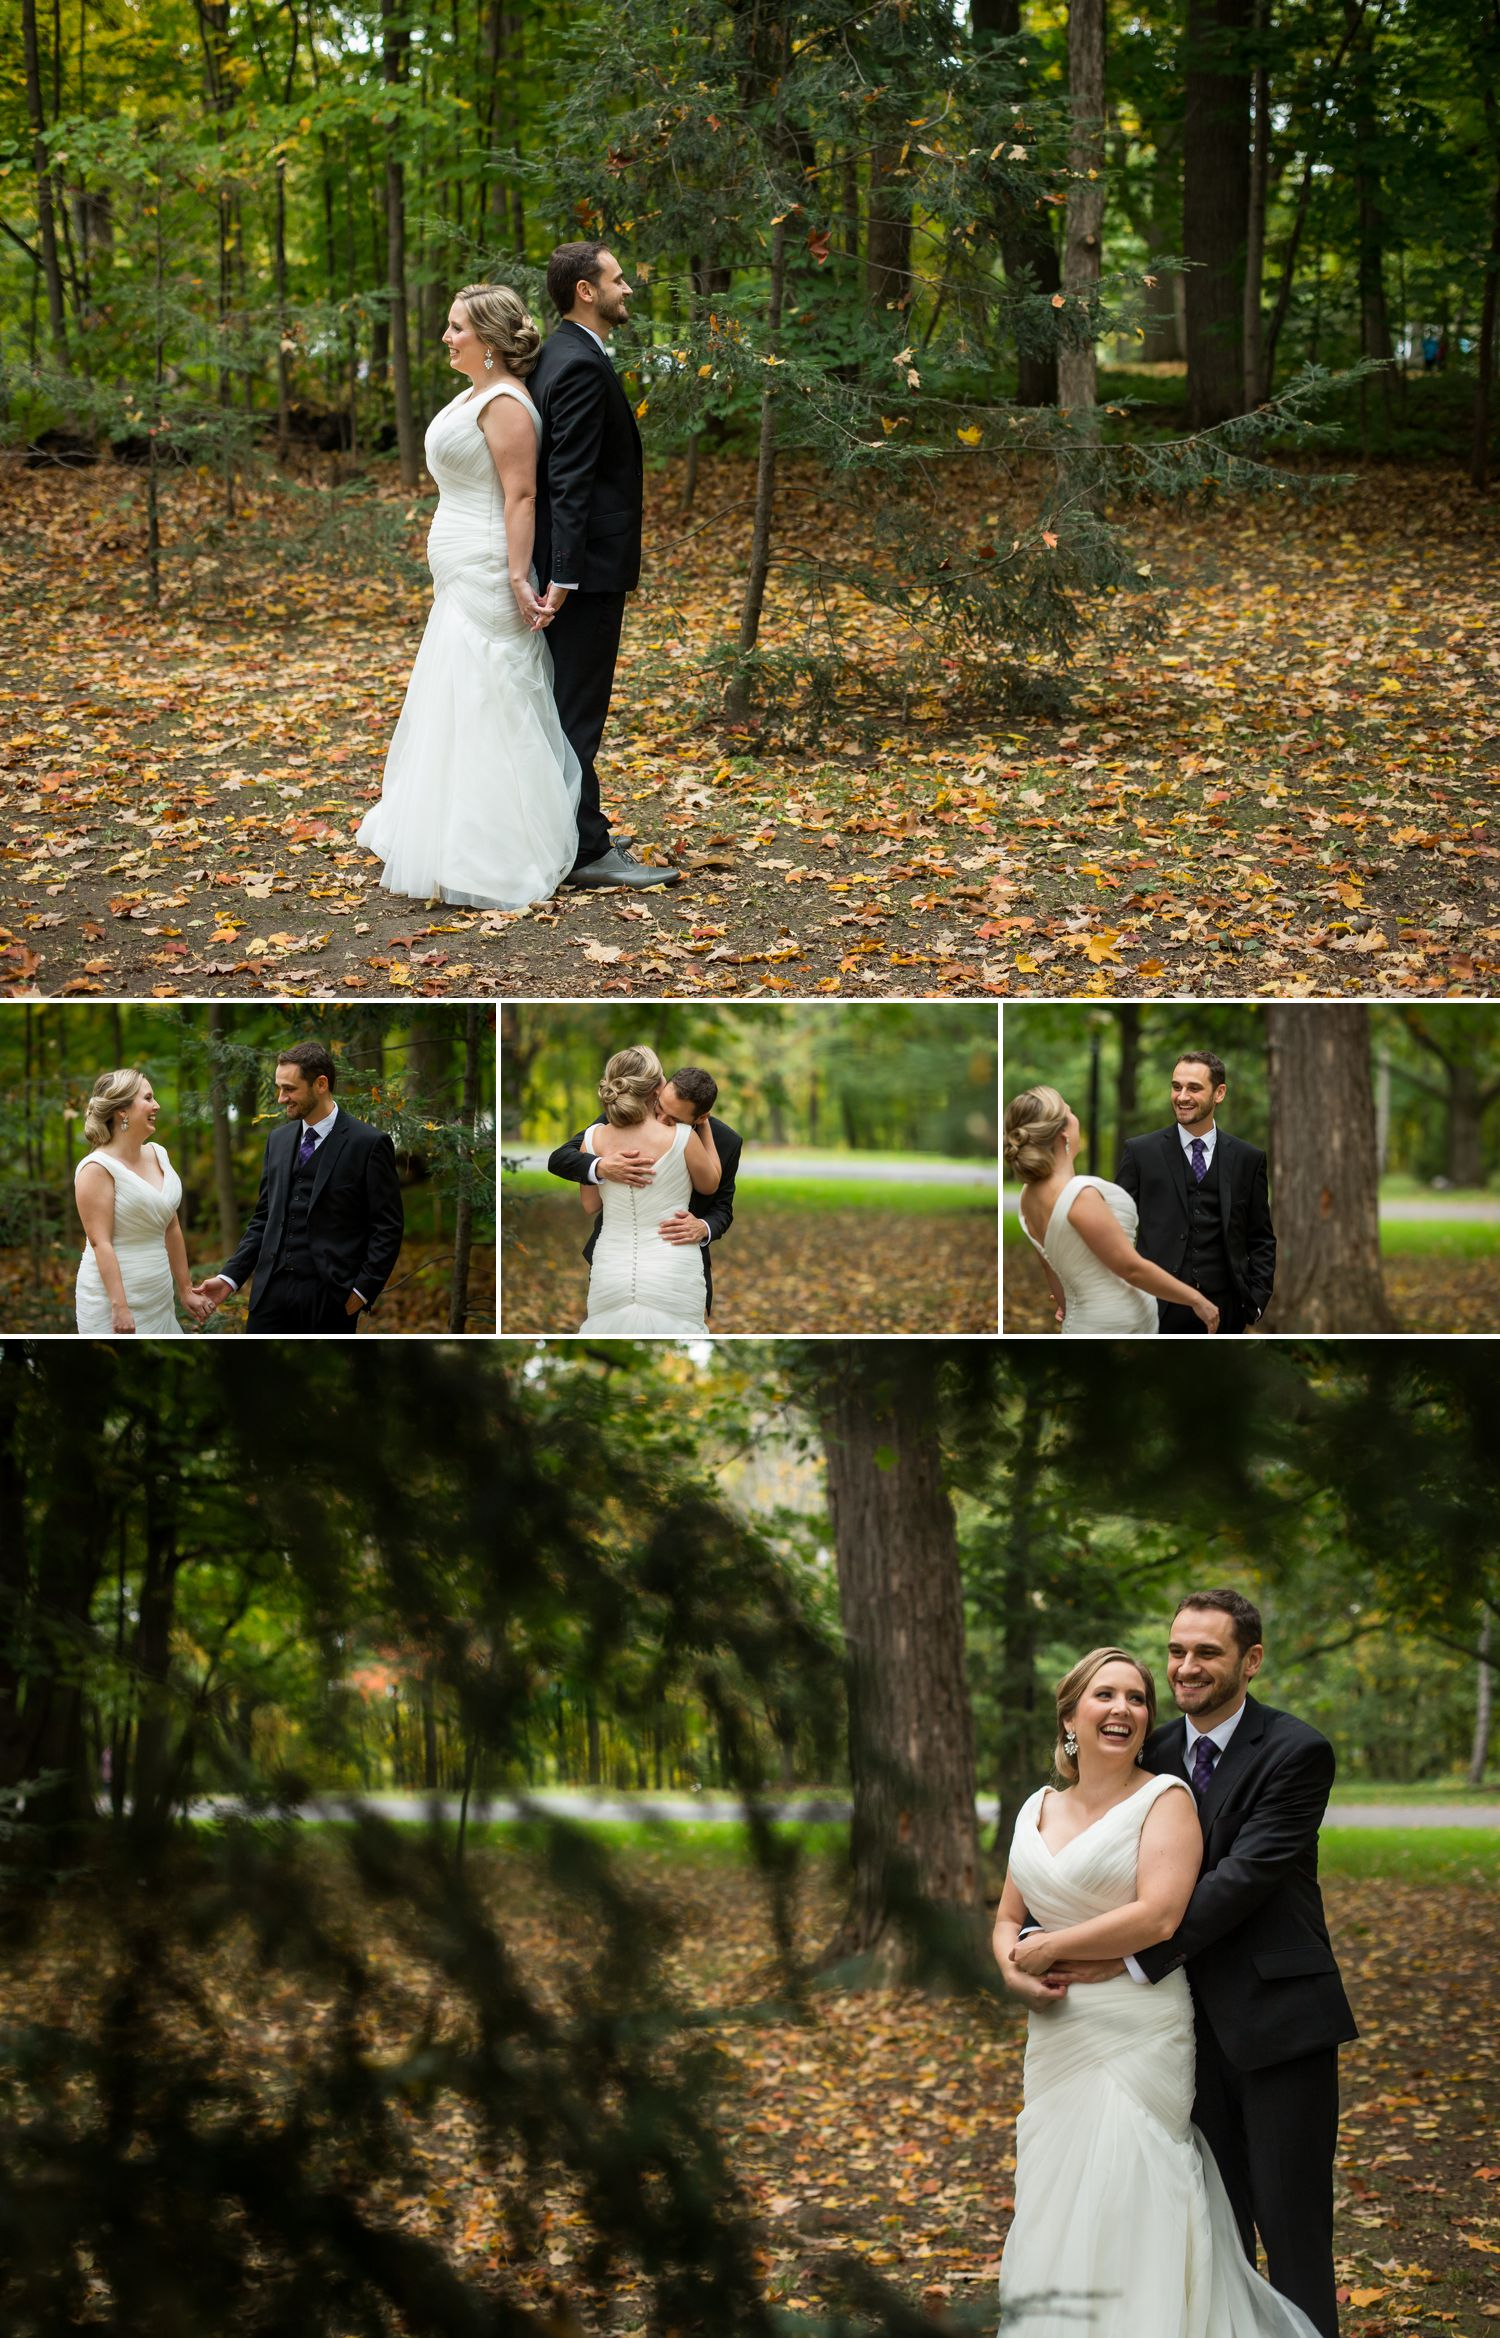 The bride and groom during their first look outside at Rockcliffe Park in Ottawa